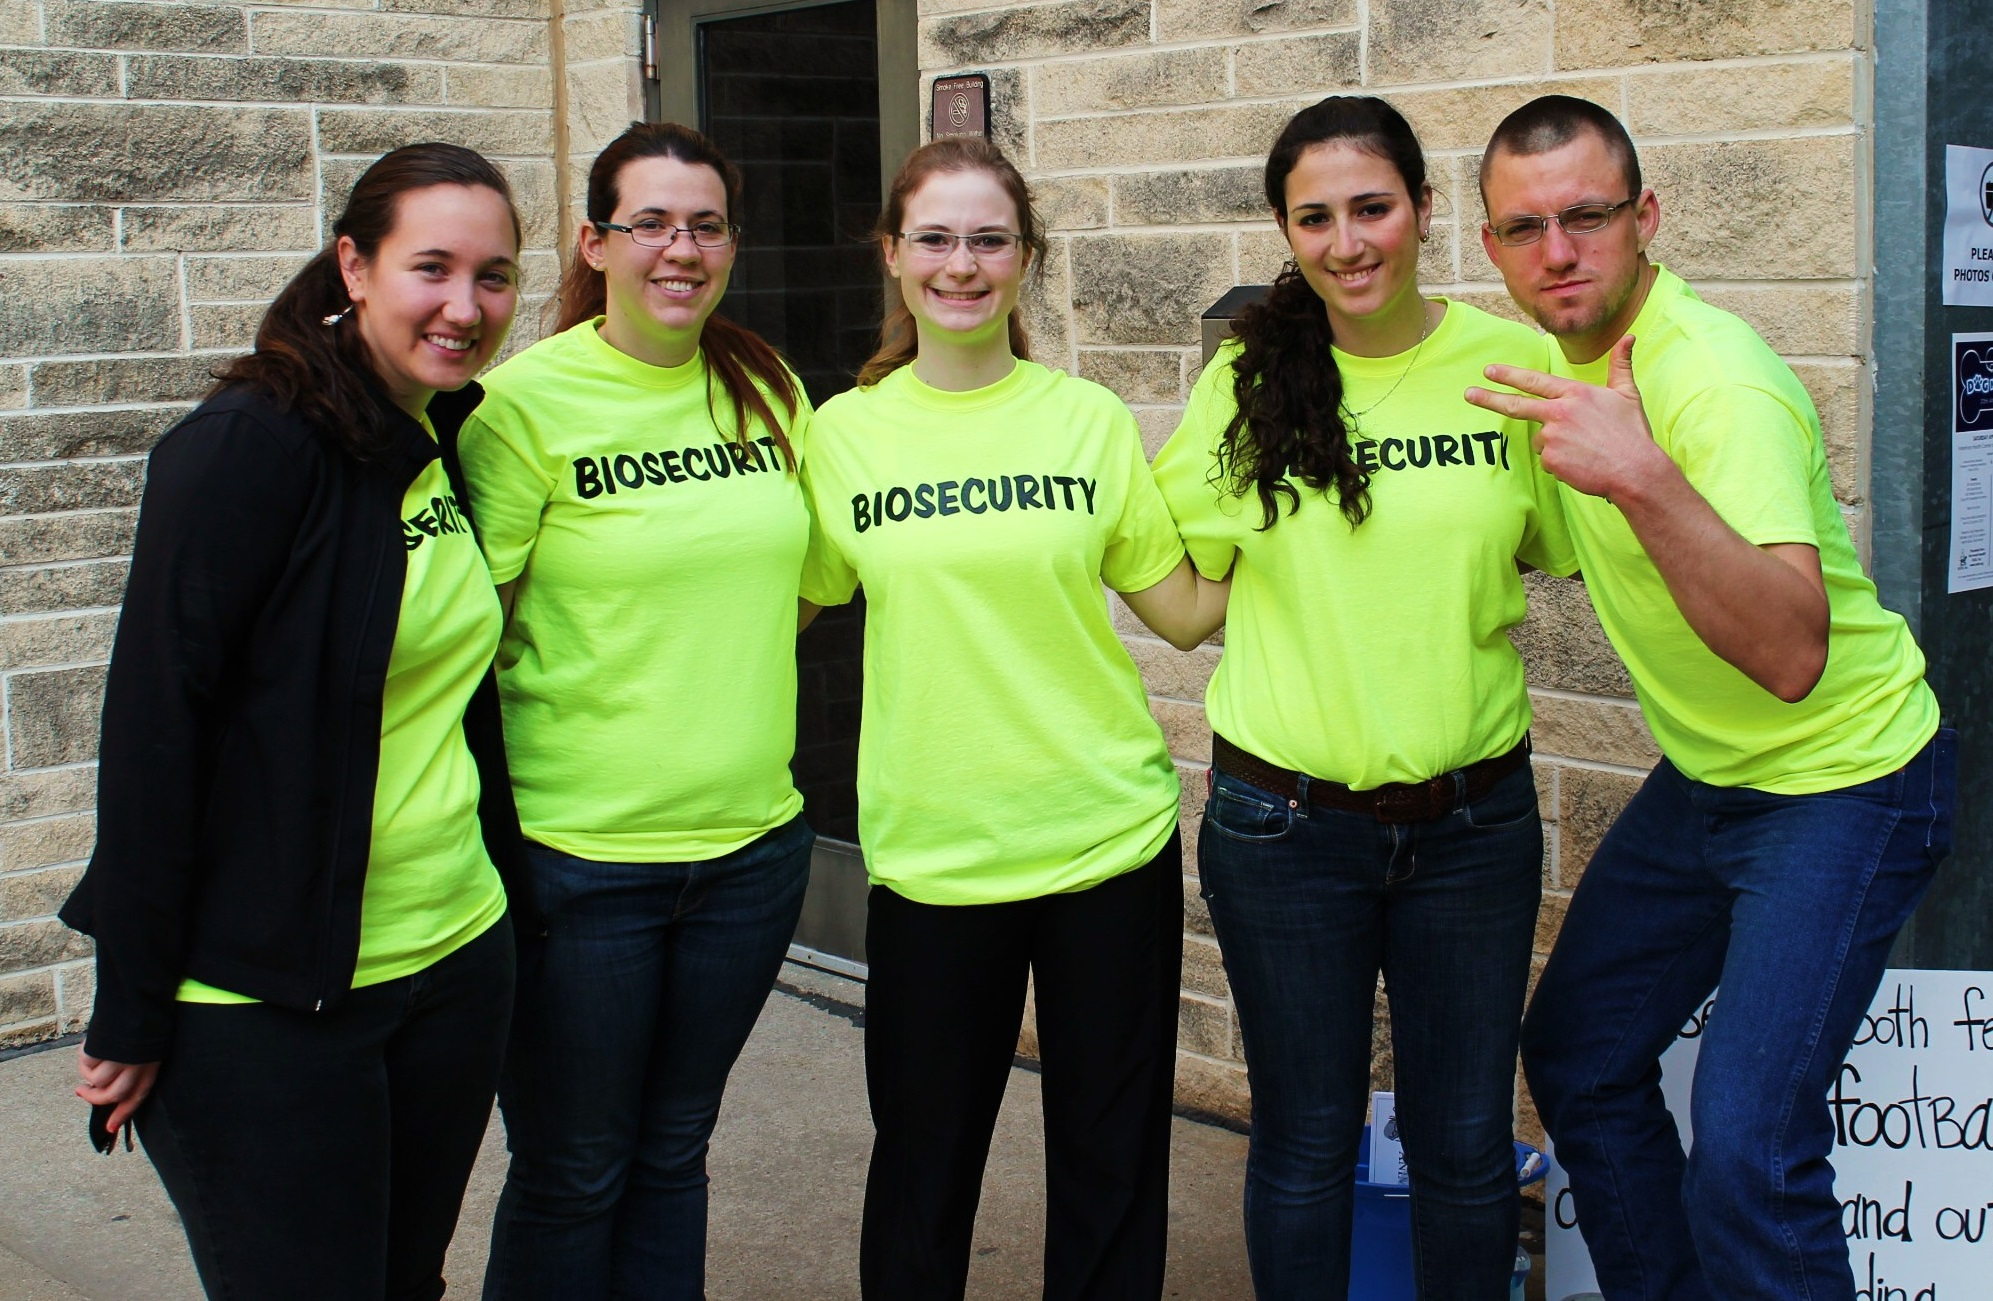 Bio House Group Custom T Shirts For Biosecurity For Your Safety Shirt